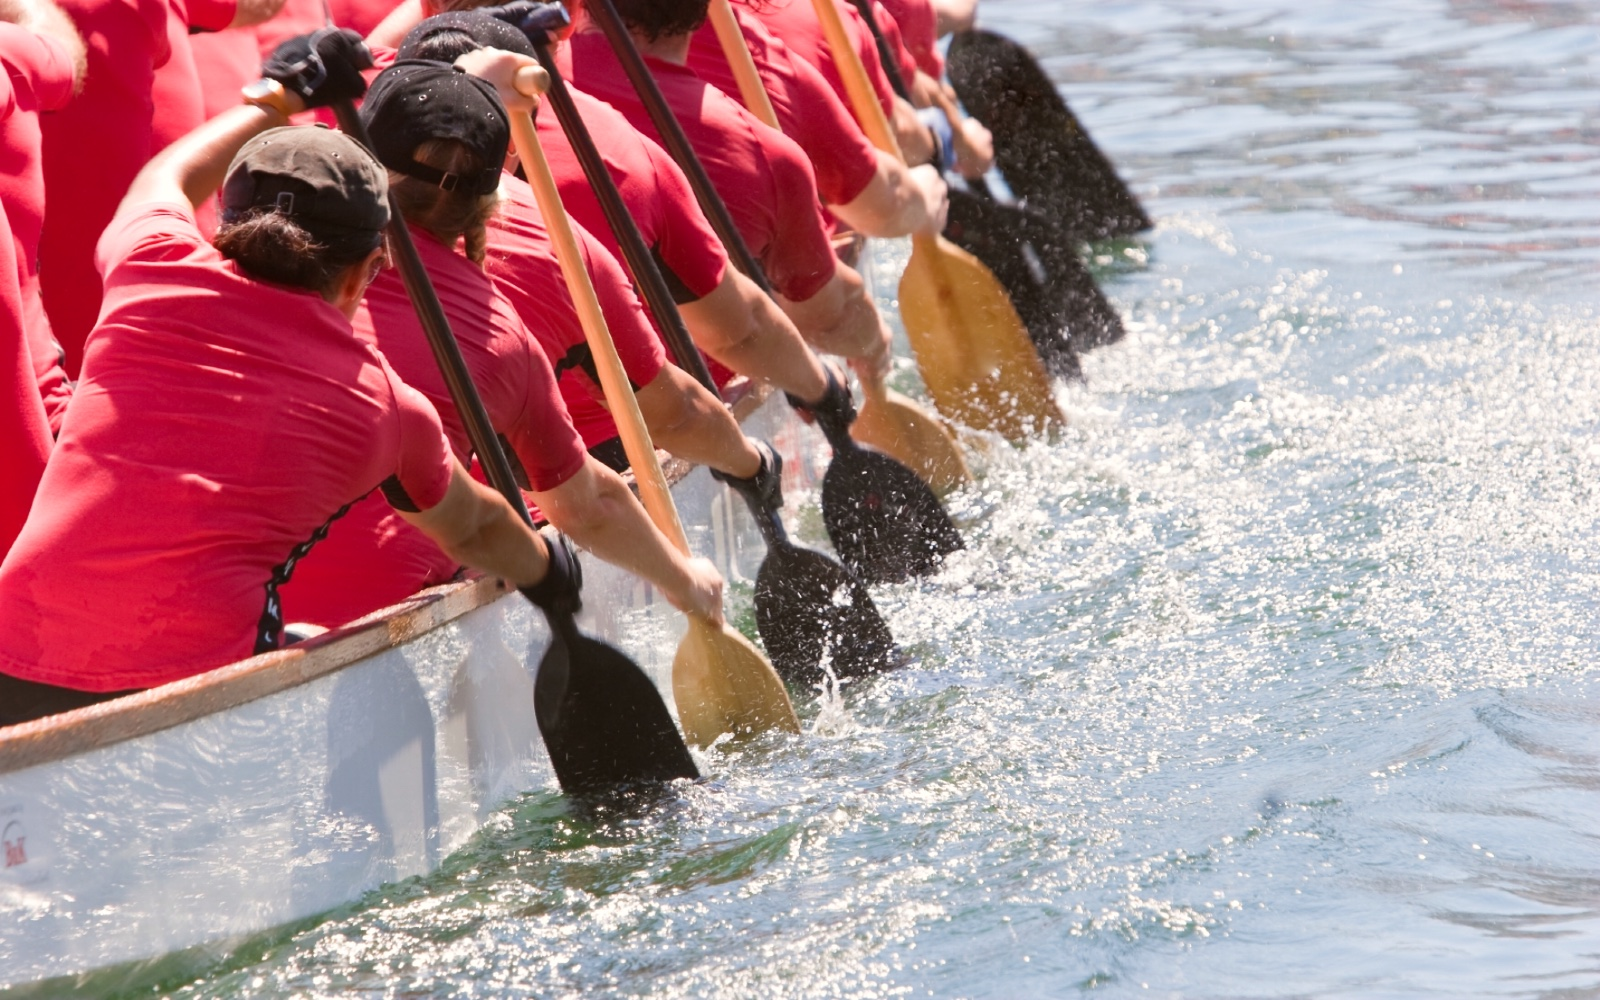 A group of paddlers compete in a dragon boat race